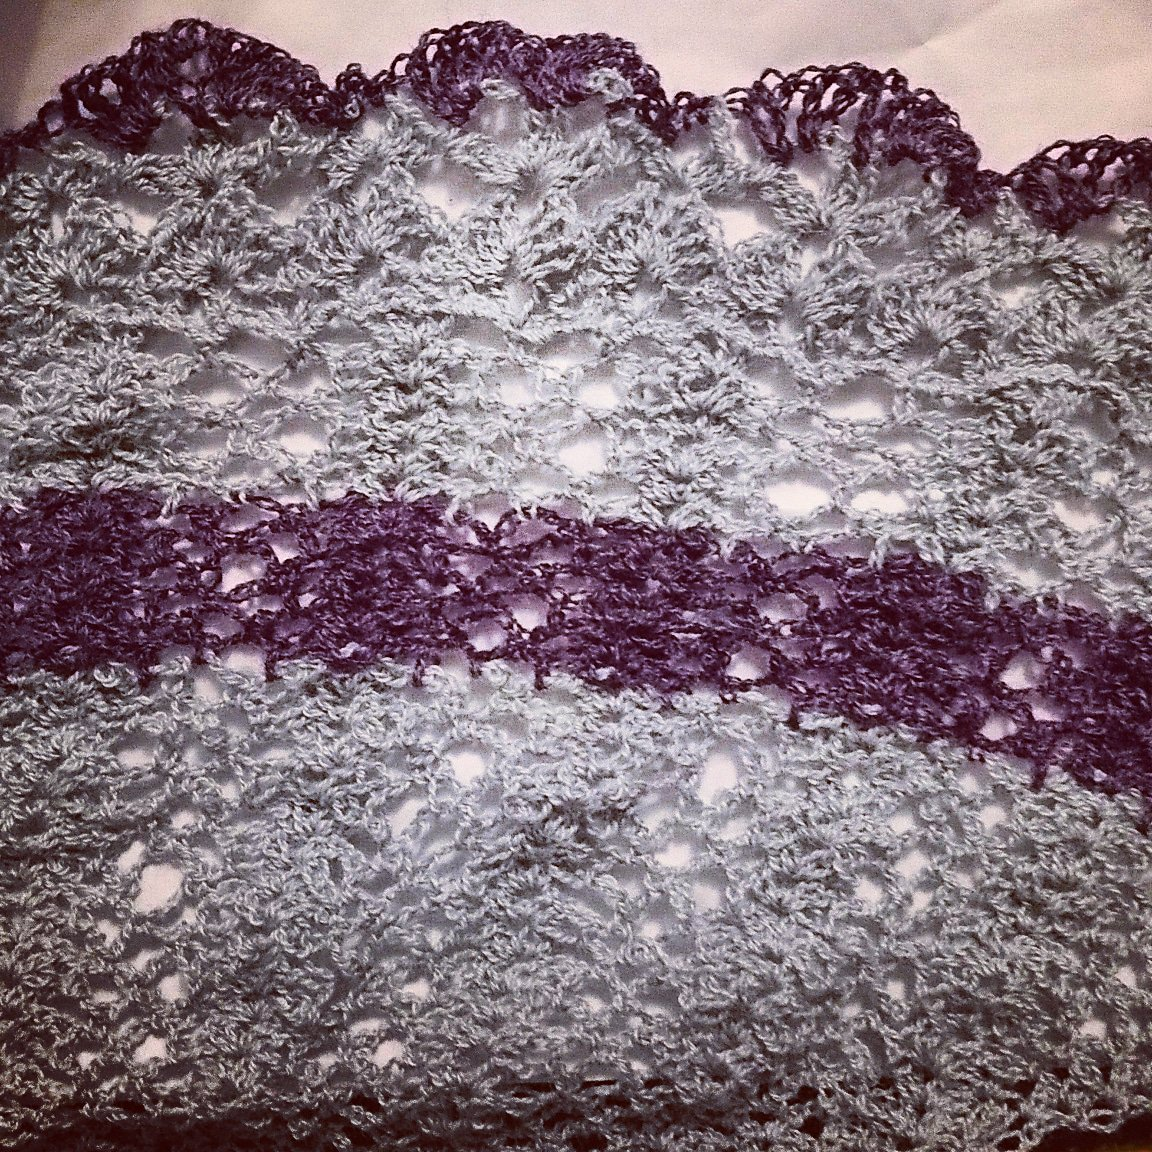 Finished shawl, with stripe of purple and lace edge ending in purple